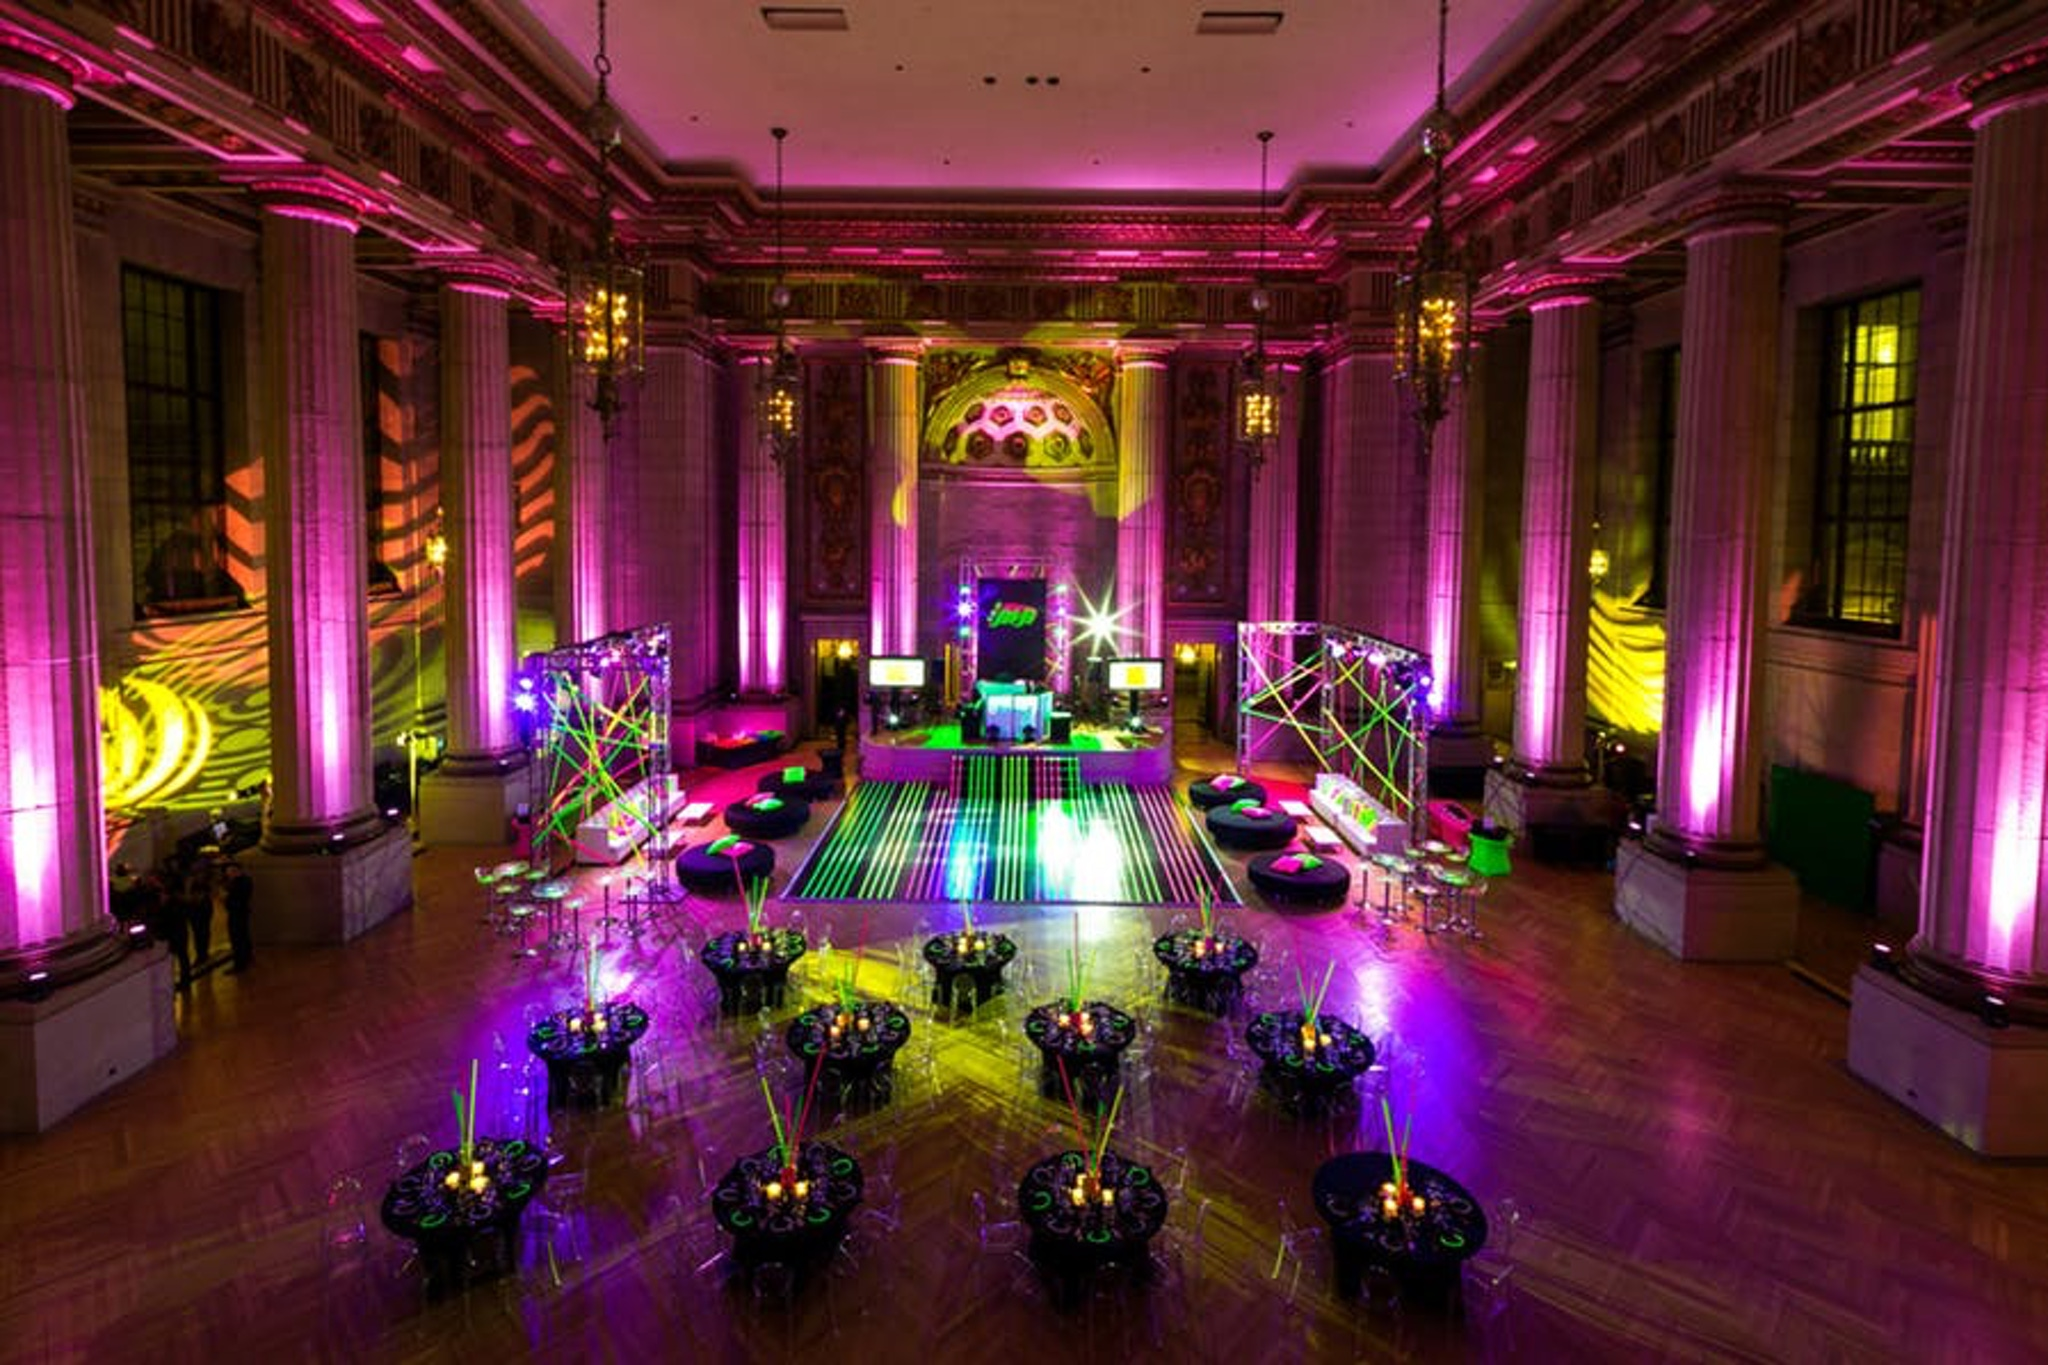 dramatic violet lighting illuminates the two-story andrew w. mellon auditorium event space